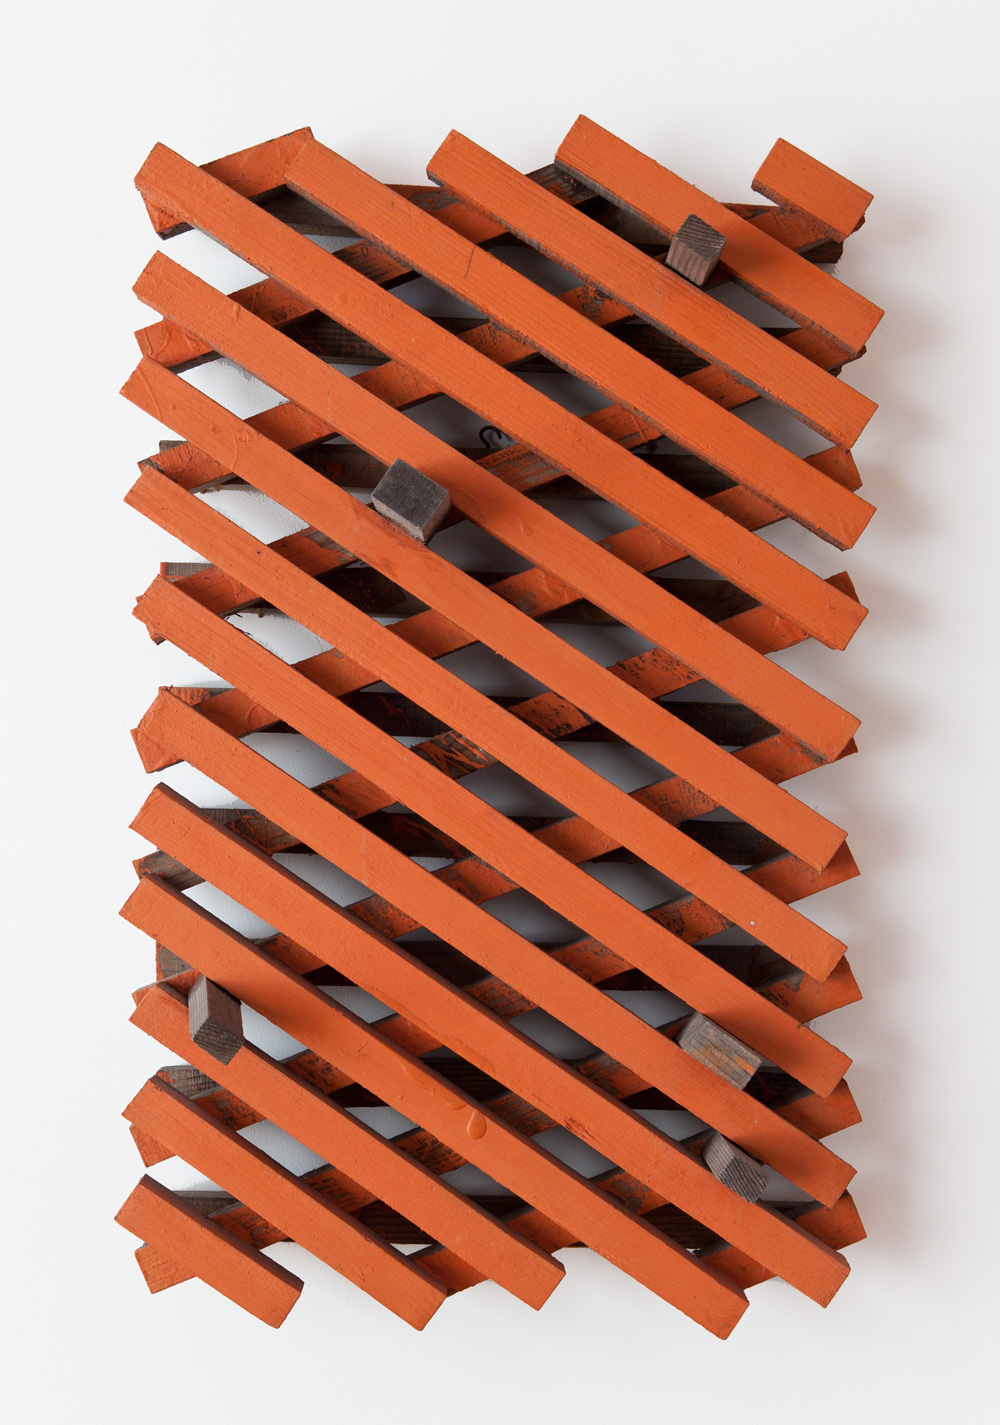 Between the Branches , 1999 樹枝境間 ( Jushi Kyōkan ) Wood, acrylic 31 x 18 1/2 x 6 5/8 inches 79 x 47 x 17 cm